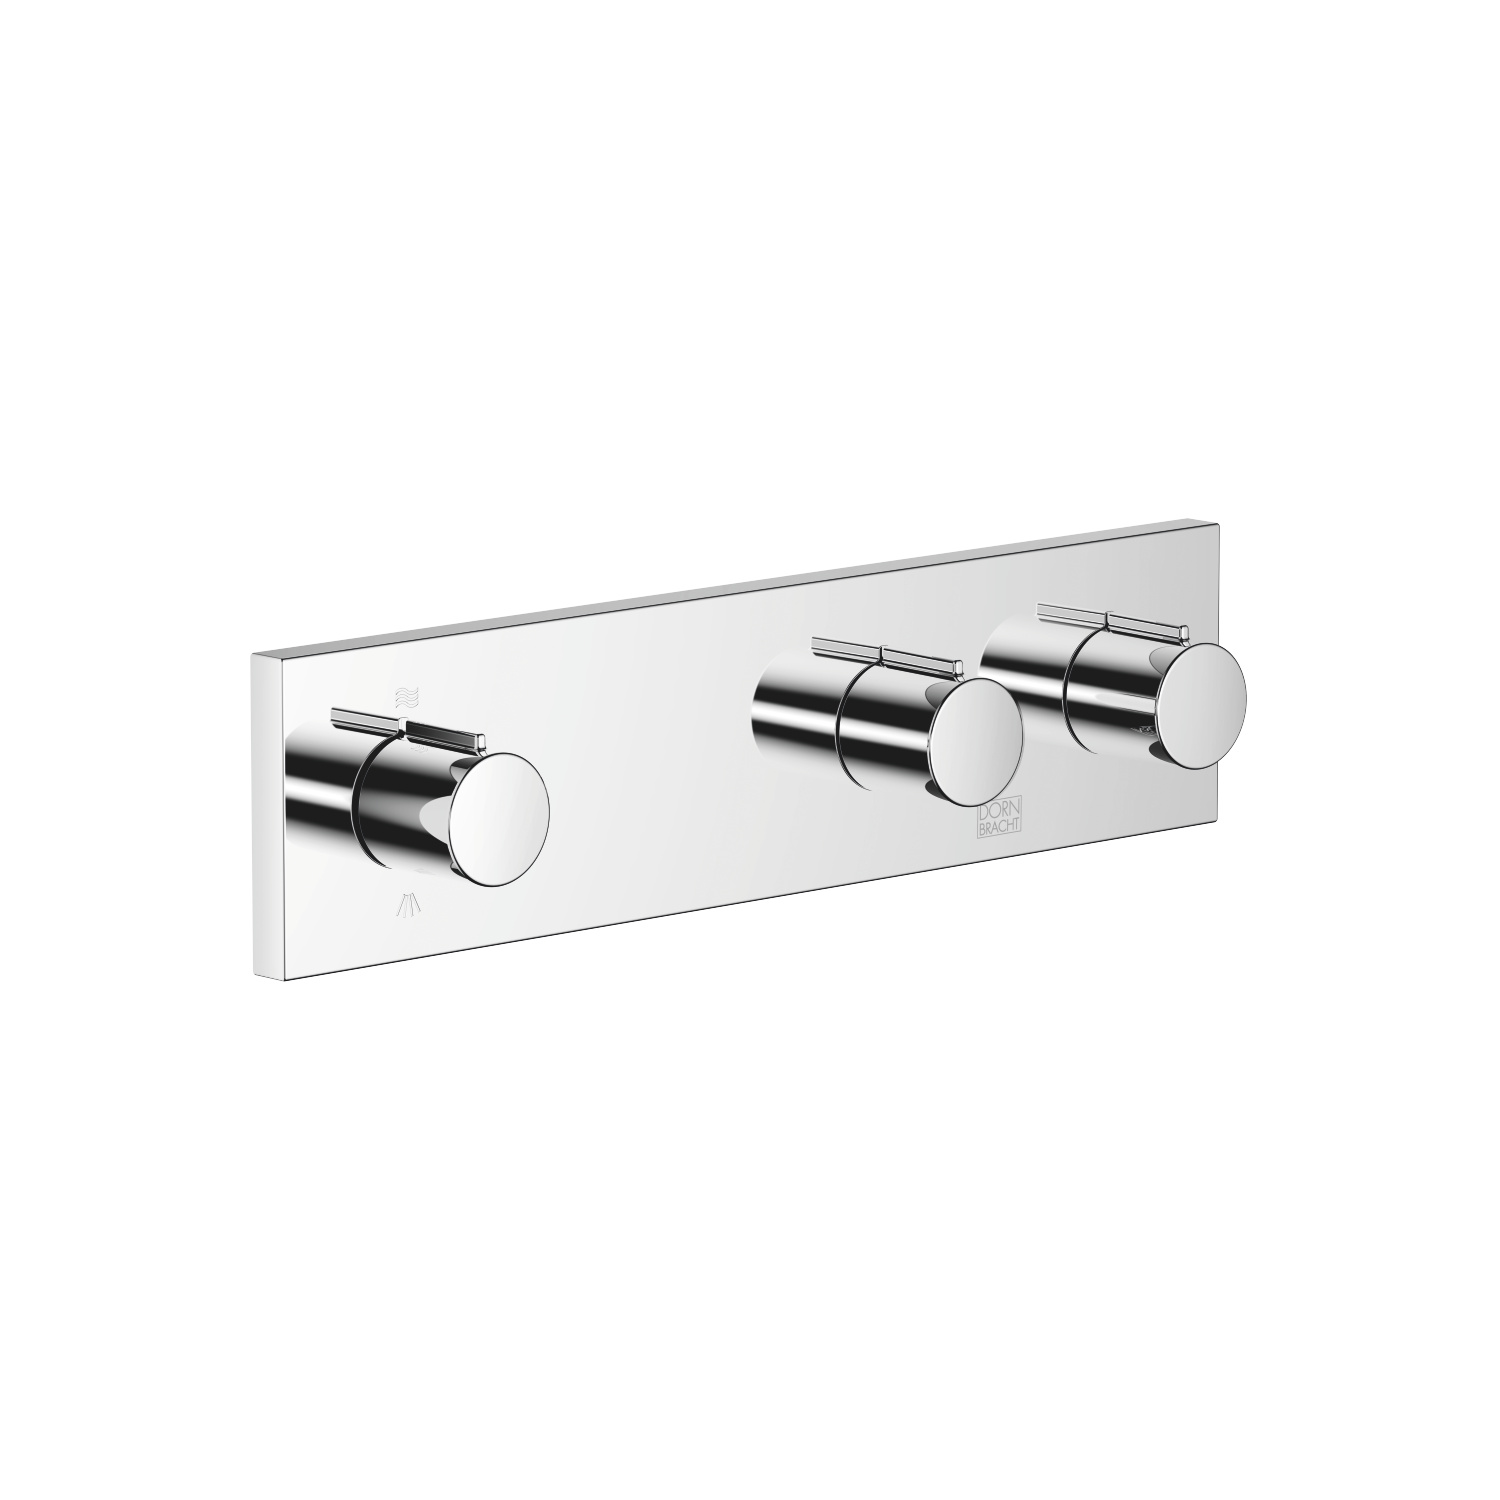 Wall valve with 2 valves with diverter for wall mounting - polished chrome - 36 337 980-00